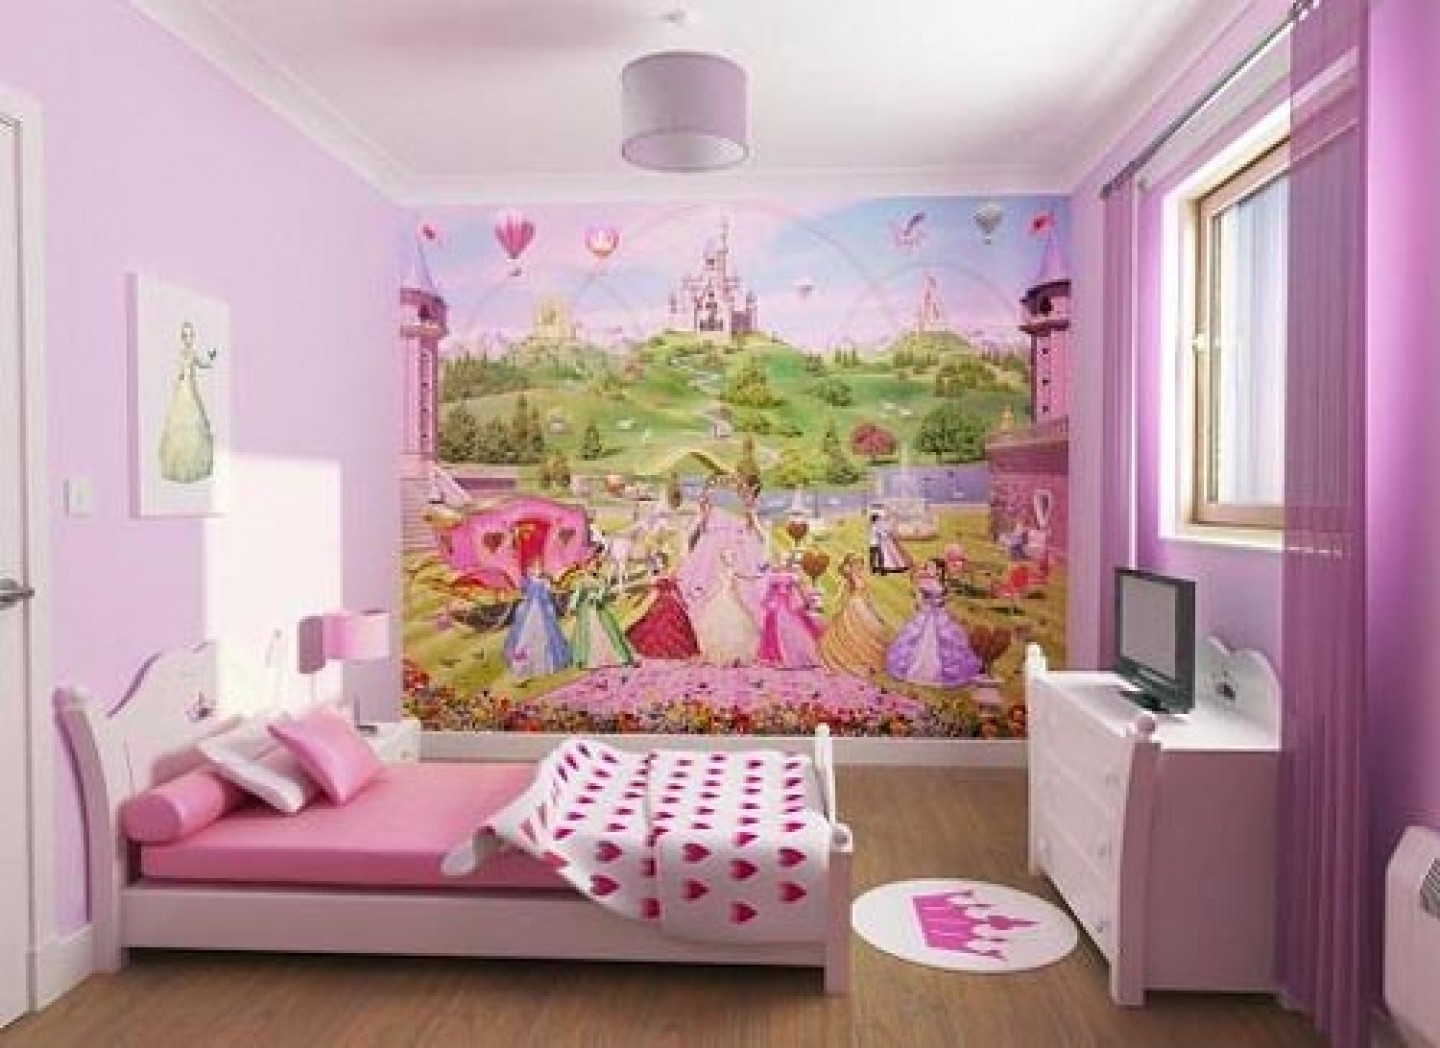 Best ideas about Girl Bedroom Ideas . Save or Pin Toddler Girl Bedroom Ideas Now.